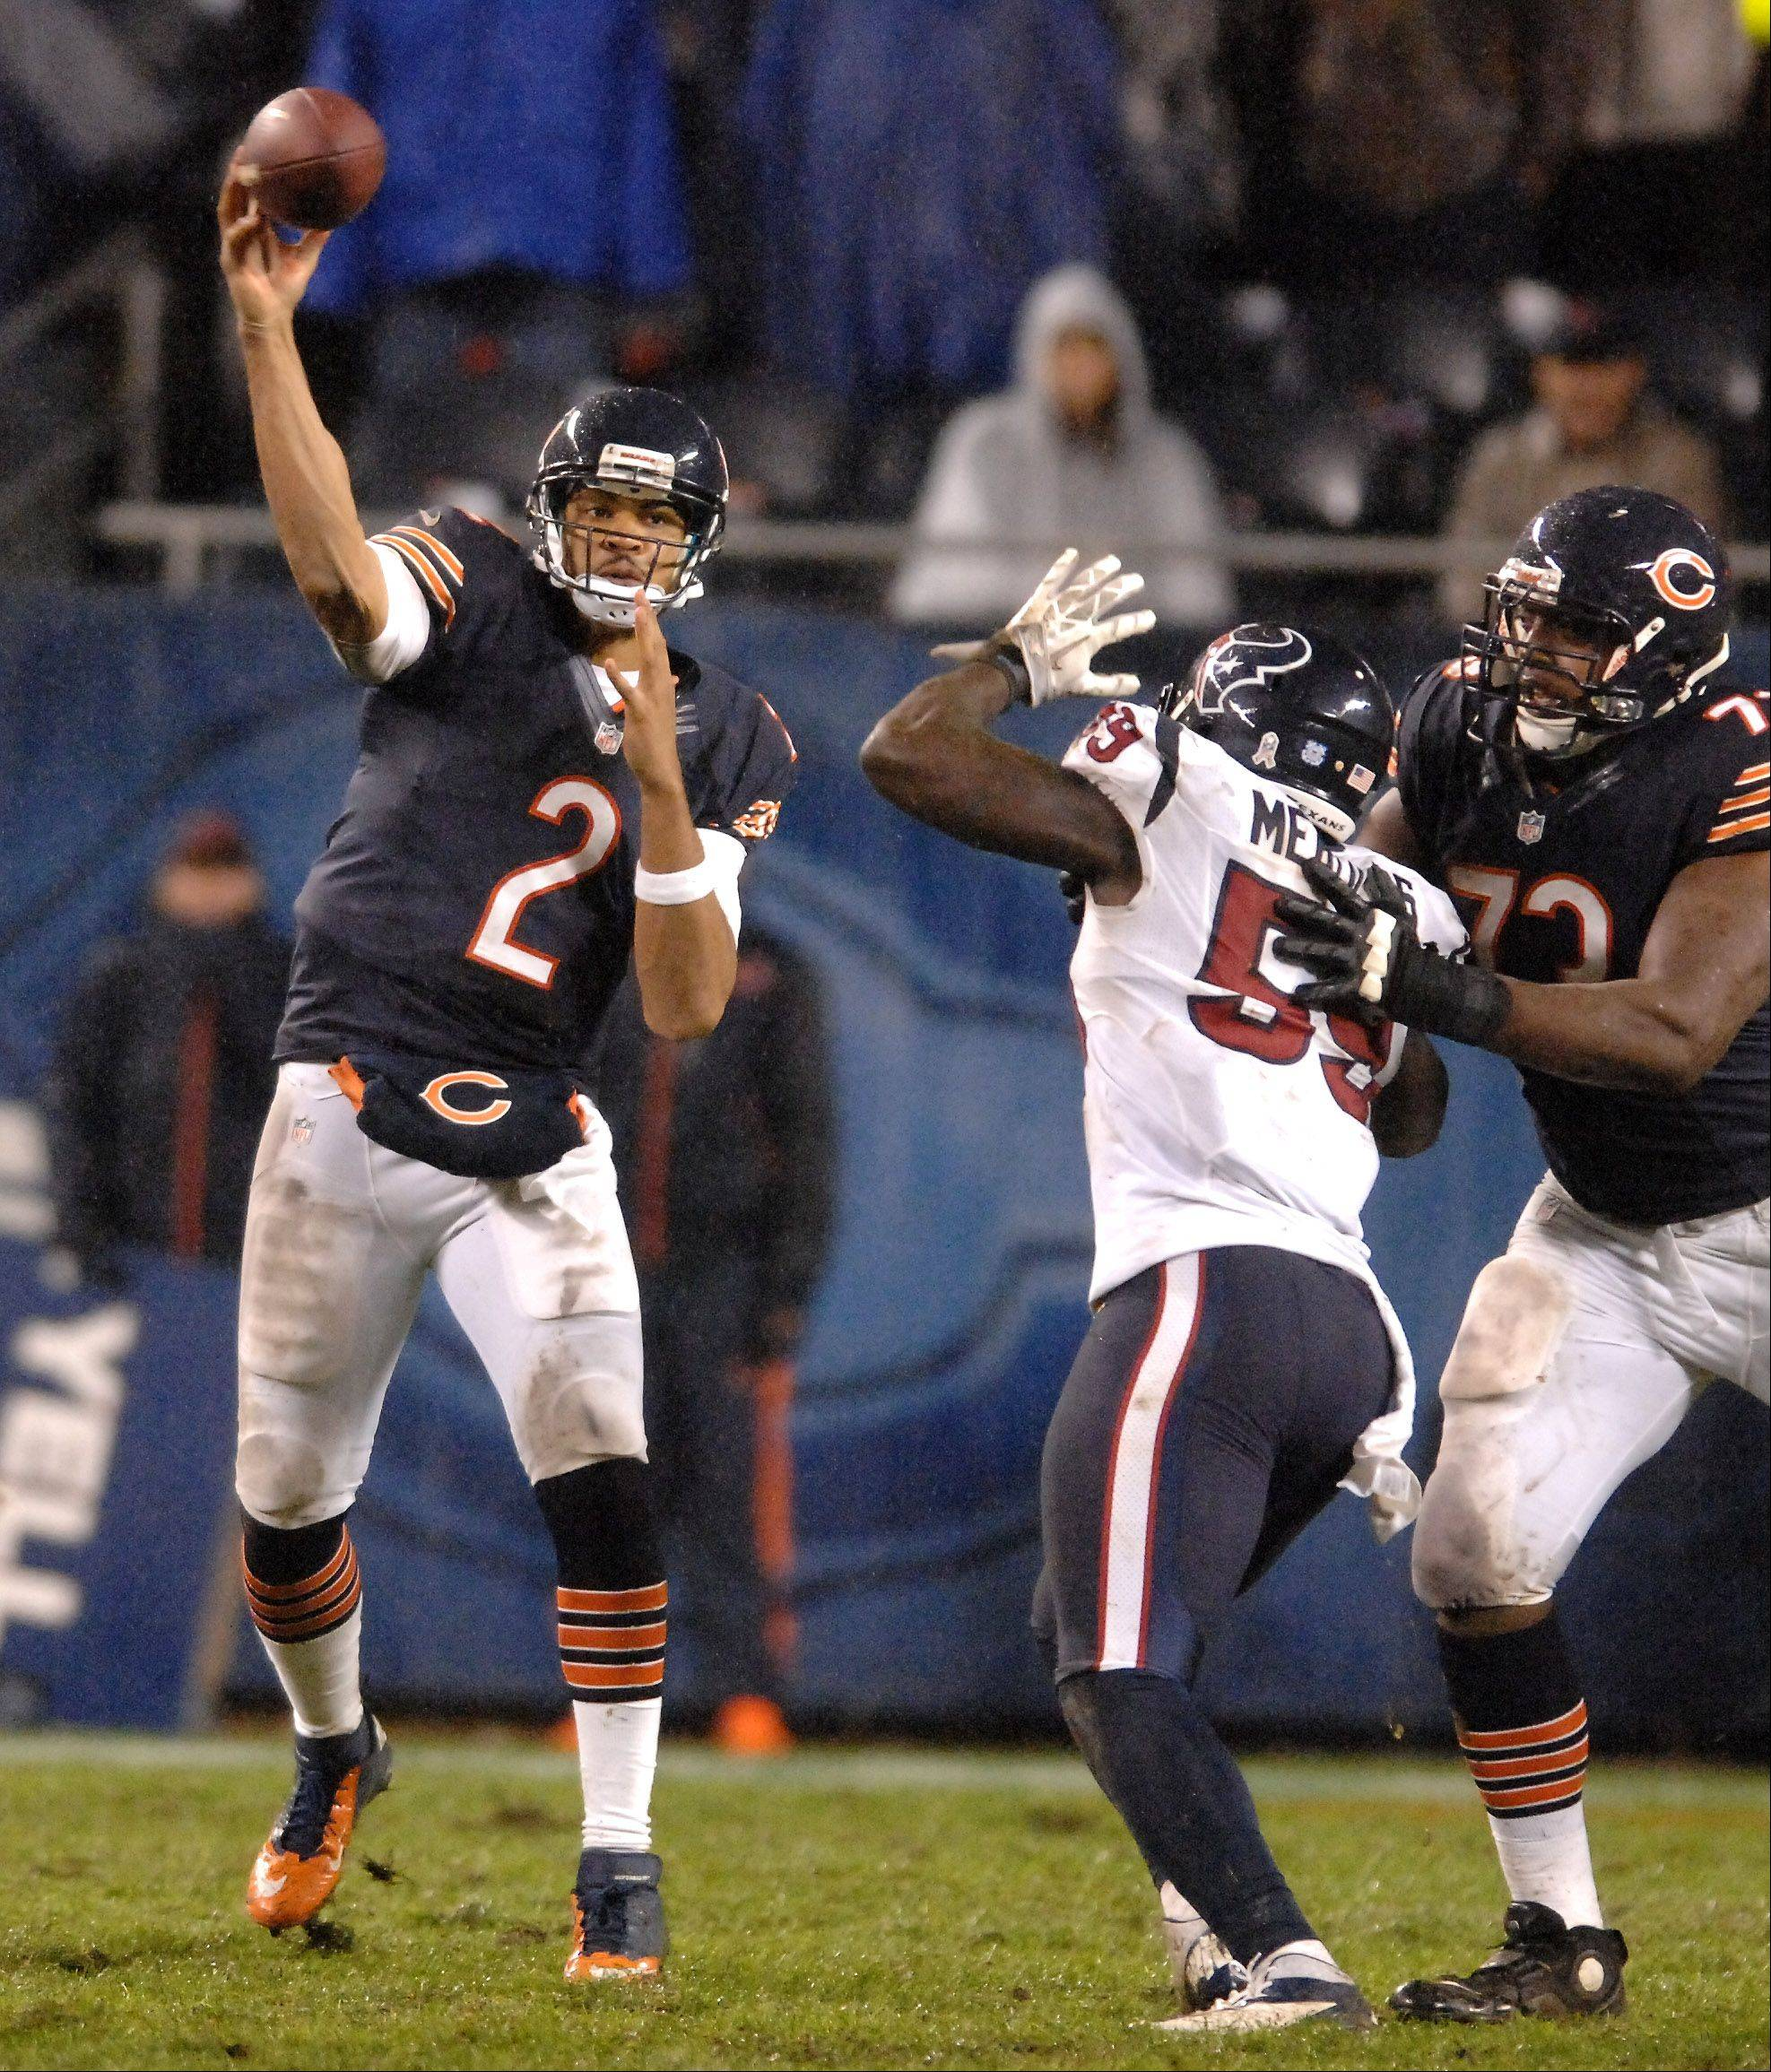 Bears quarterback Jason Campbell (2) will get his first start for the team on Monday night when the Bears face the San Francisco 49ers on the road. QB Jay Cutler and DE Shea McClellin will not play on Monday as they recover from concussions, team officials said Friday.